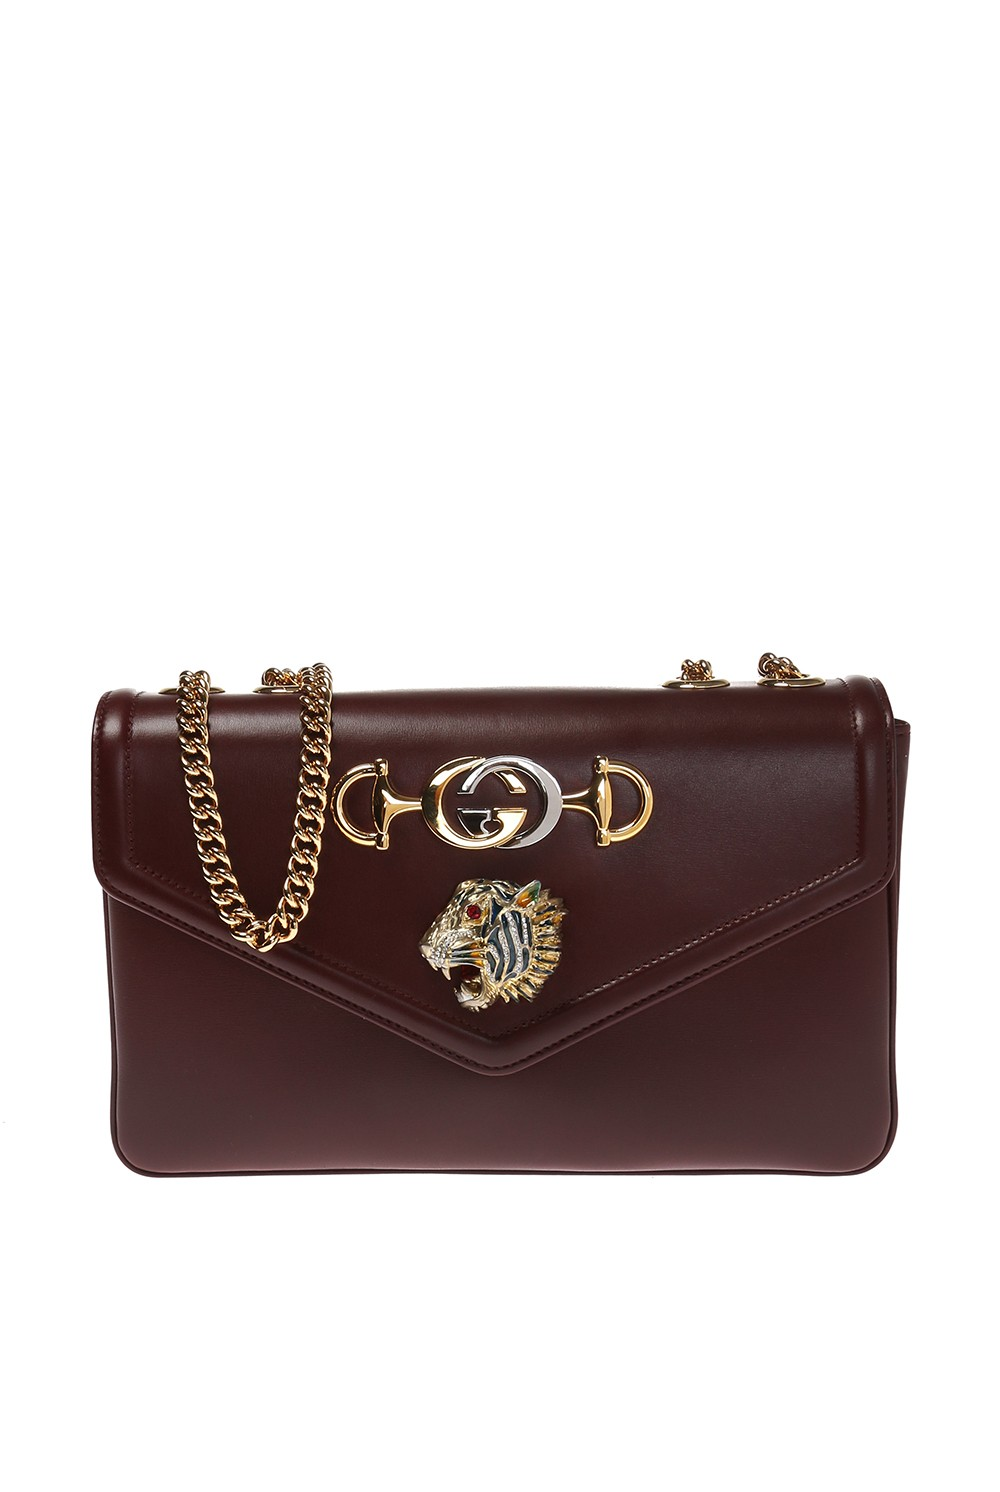 Gucci 'Rajah' shoulder bag